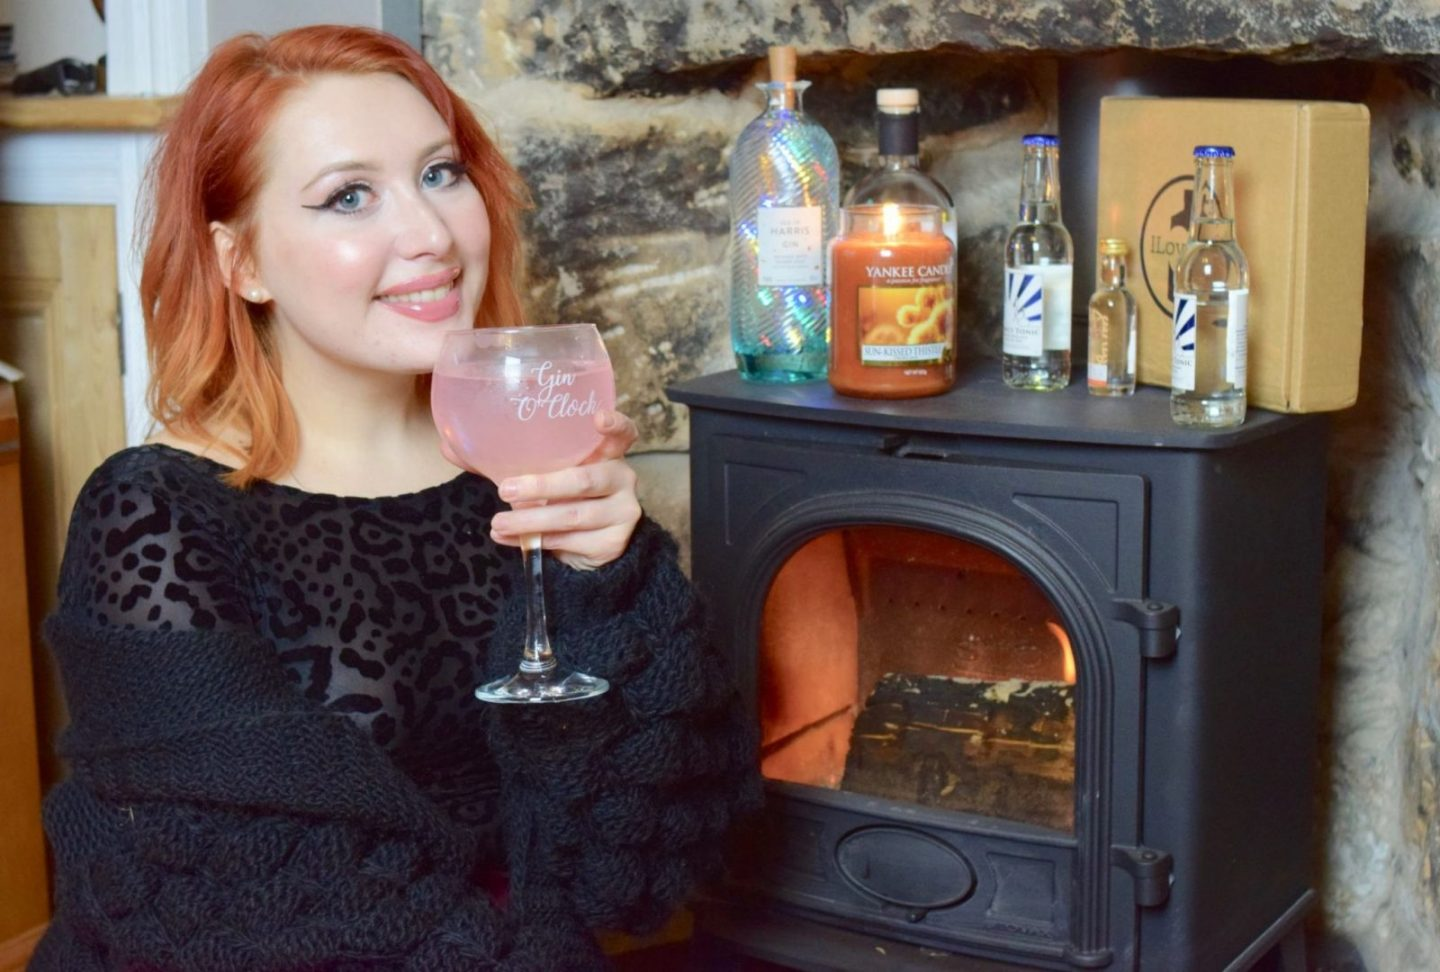 Forget dry January. I'm doing 'ginuary' – why 'lagom' and treating yourself is the solution to January blues